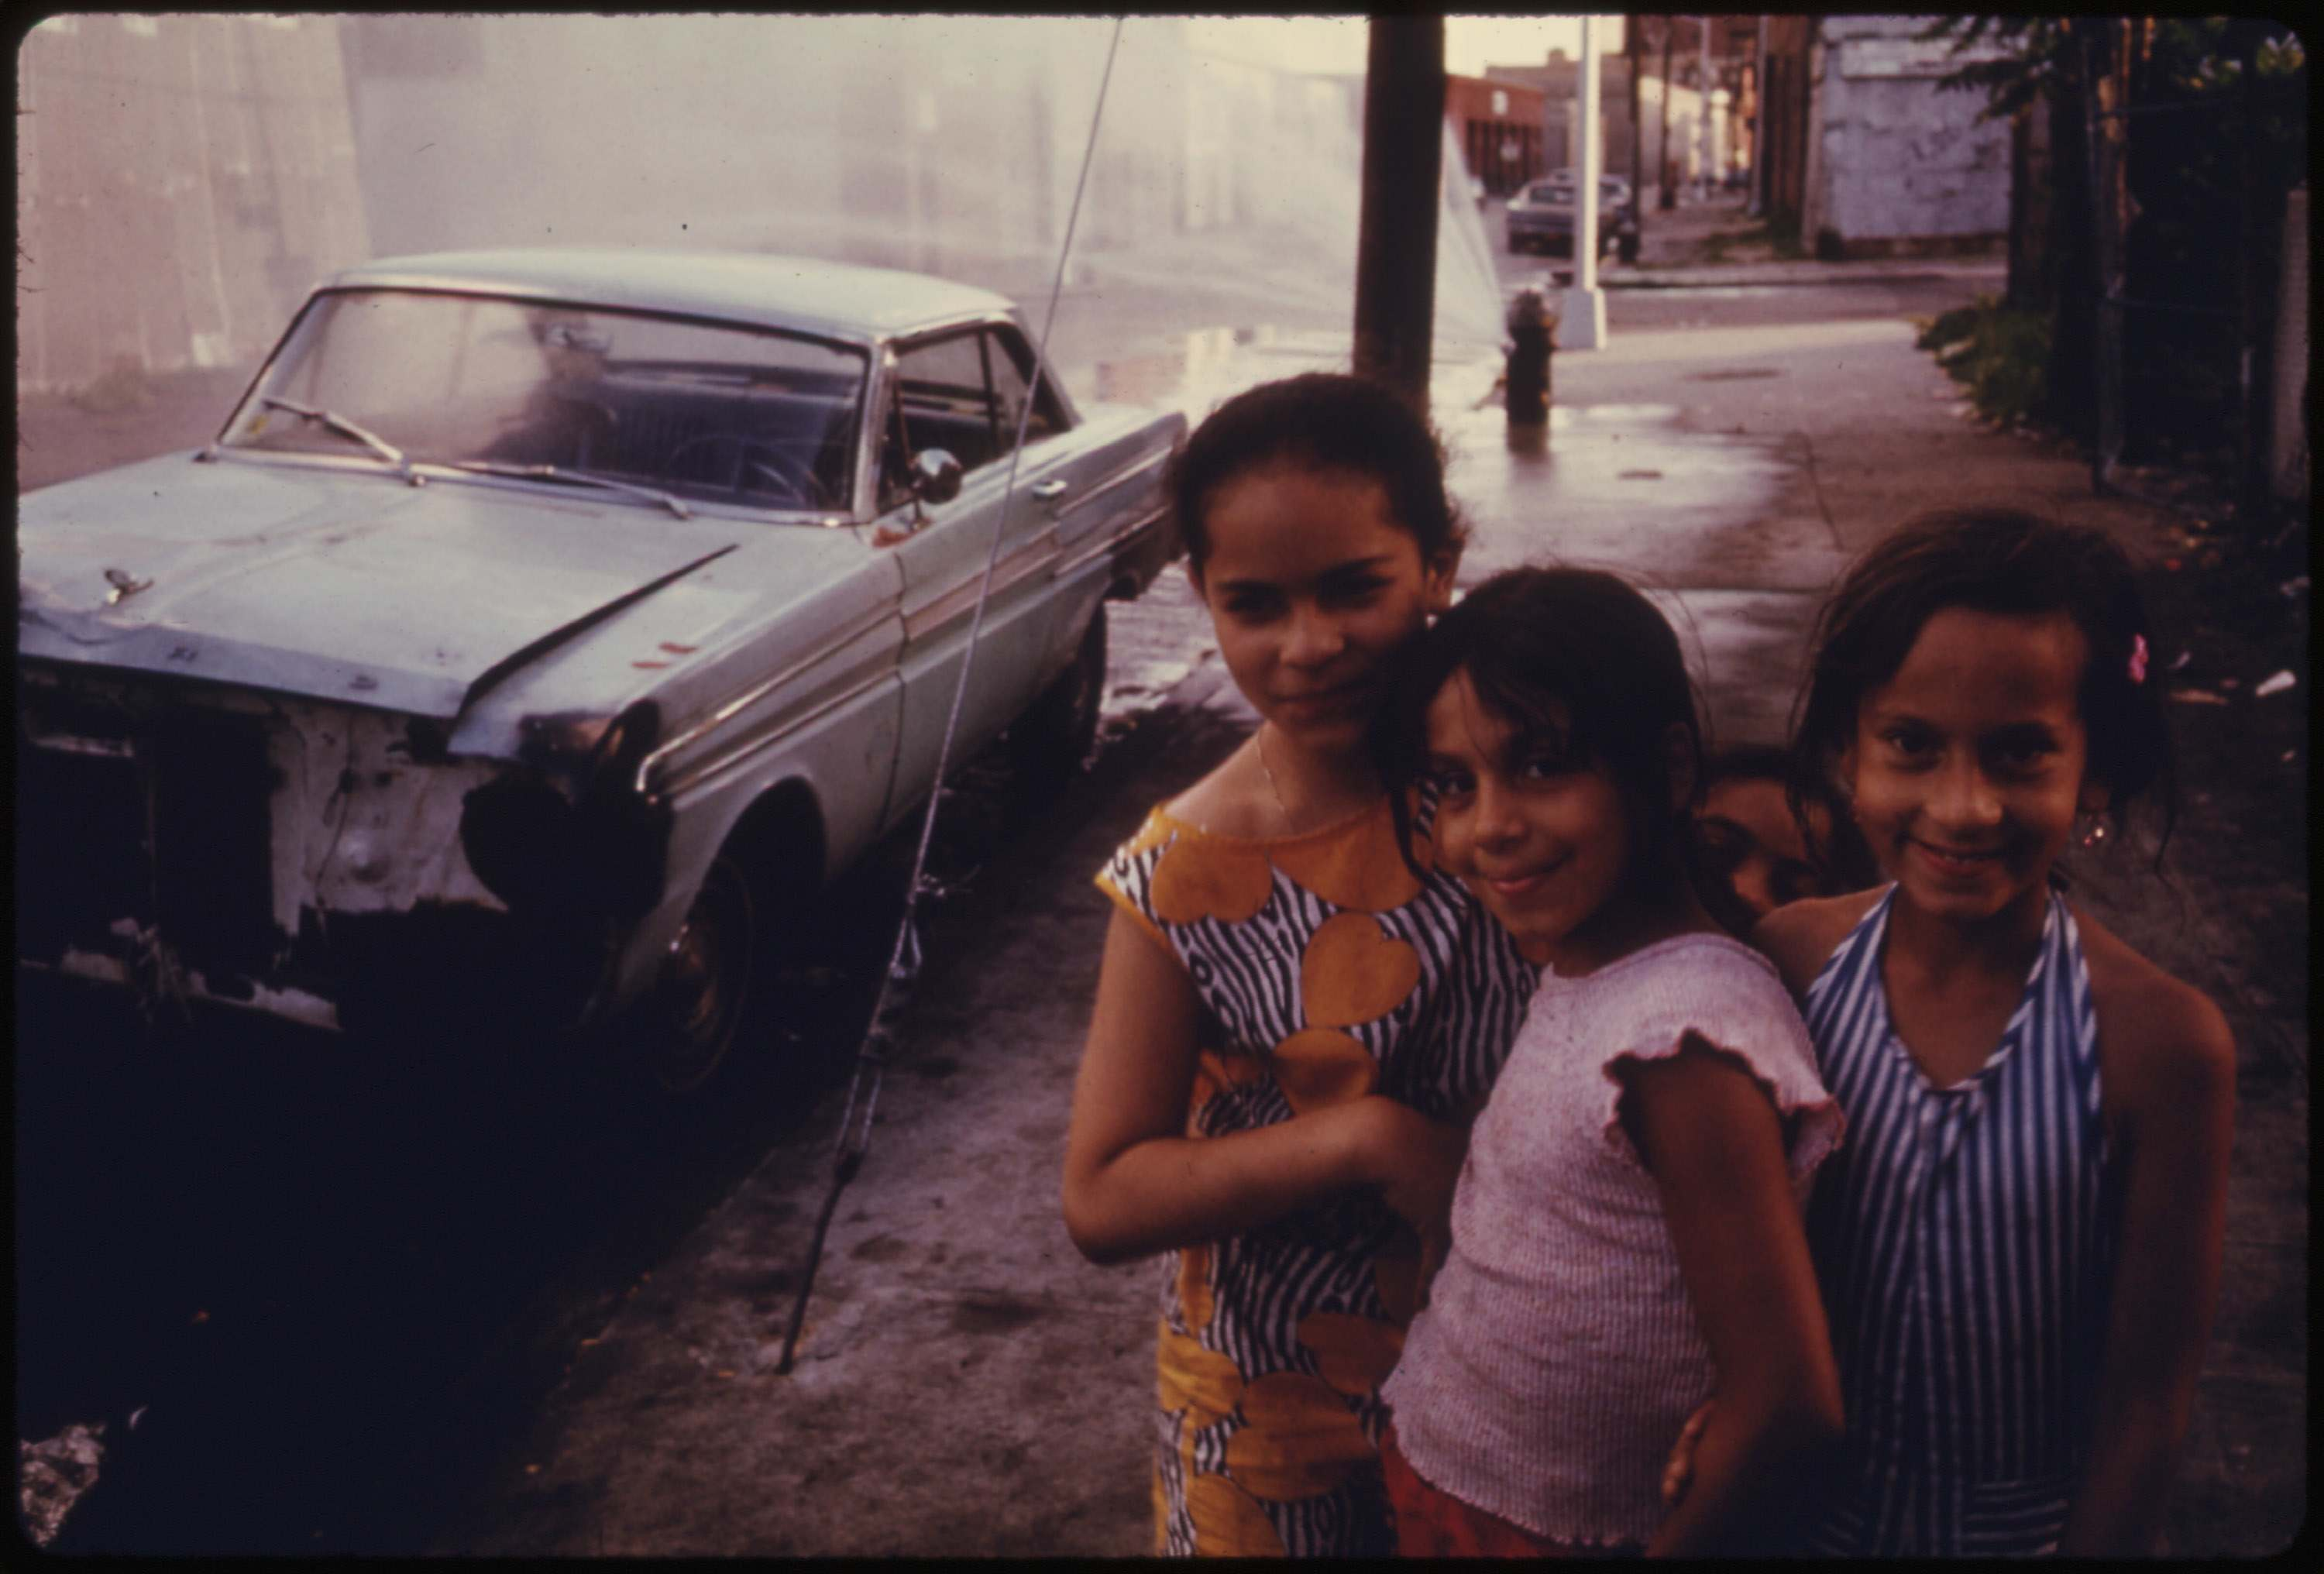 Three young girls on Bond Street, Brooklyn, July 1974.